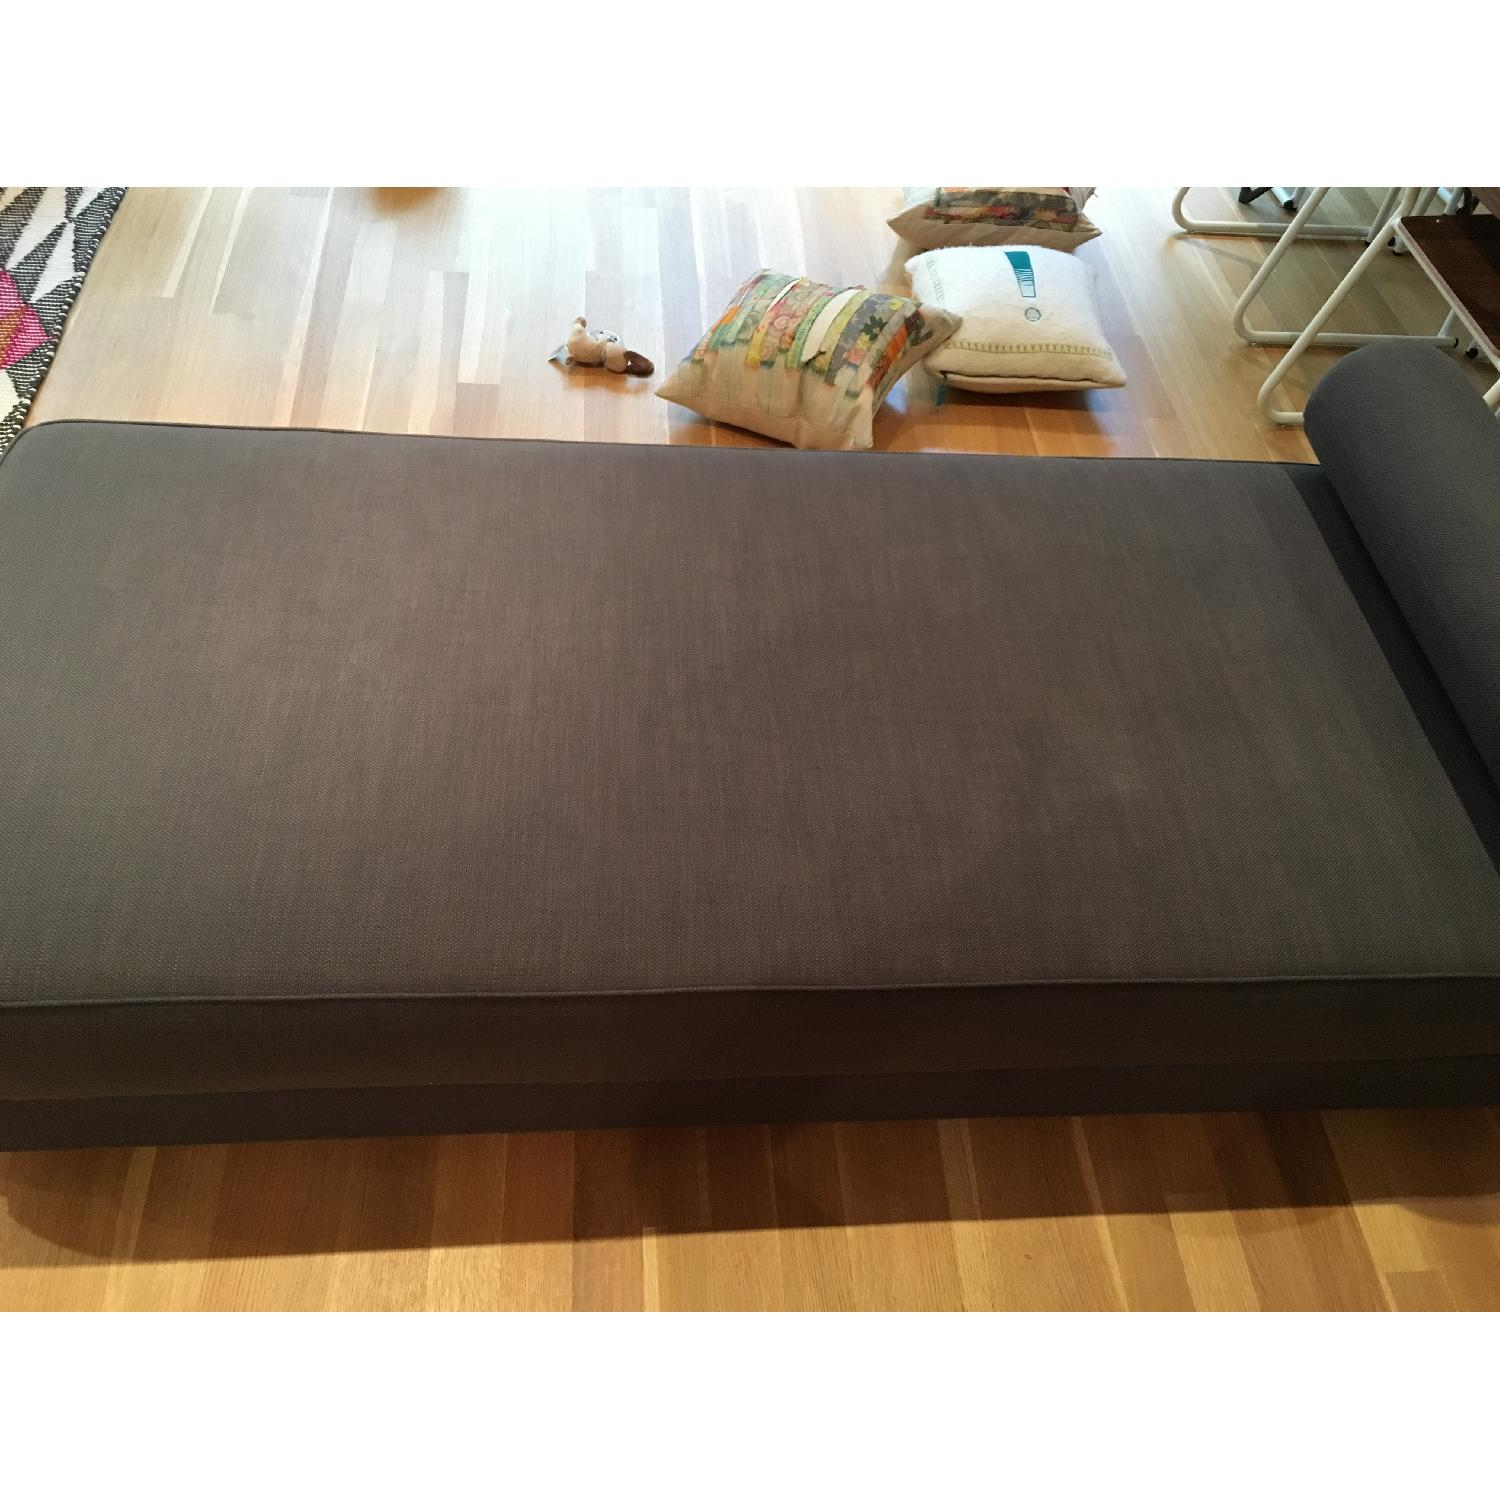 CB2 Lubi Sleeper Daybed - image-6